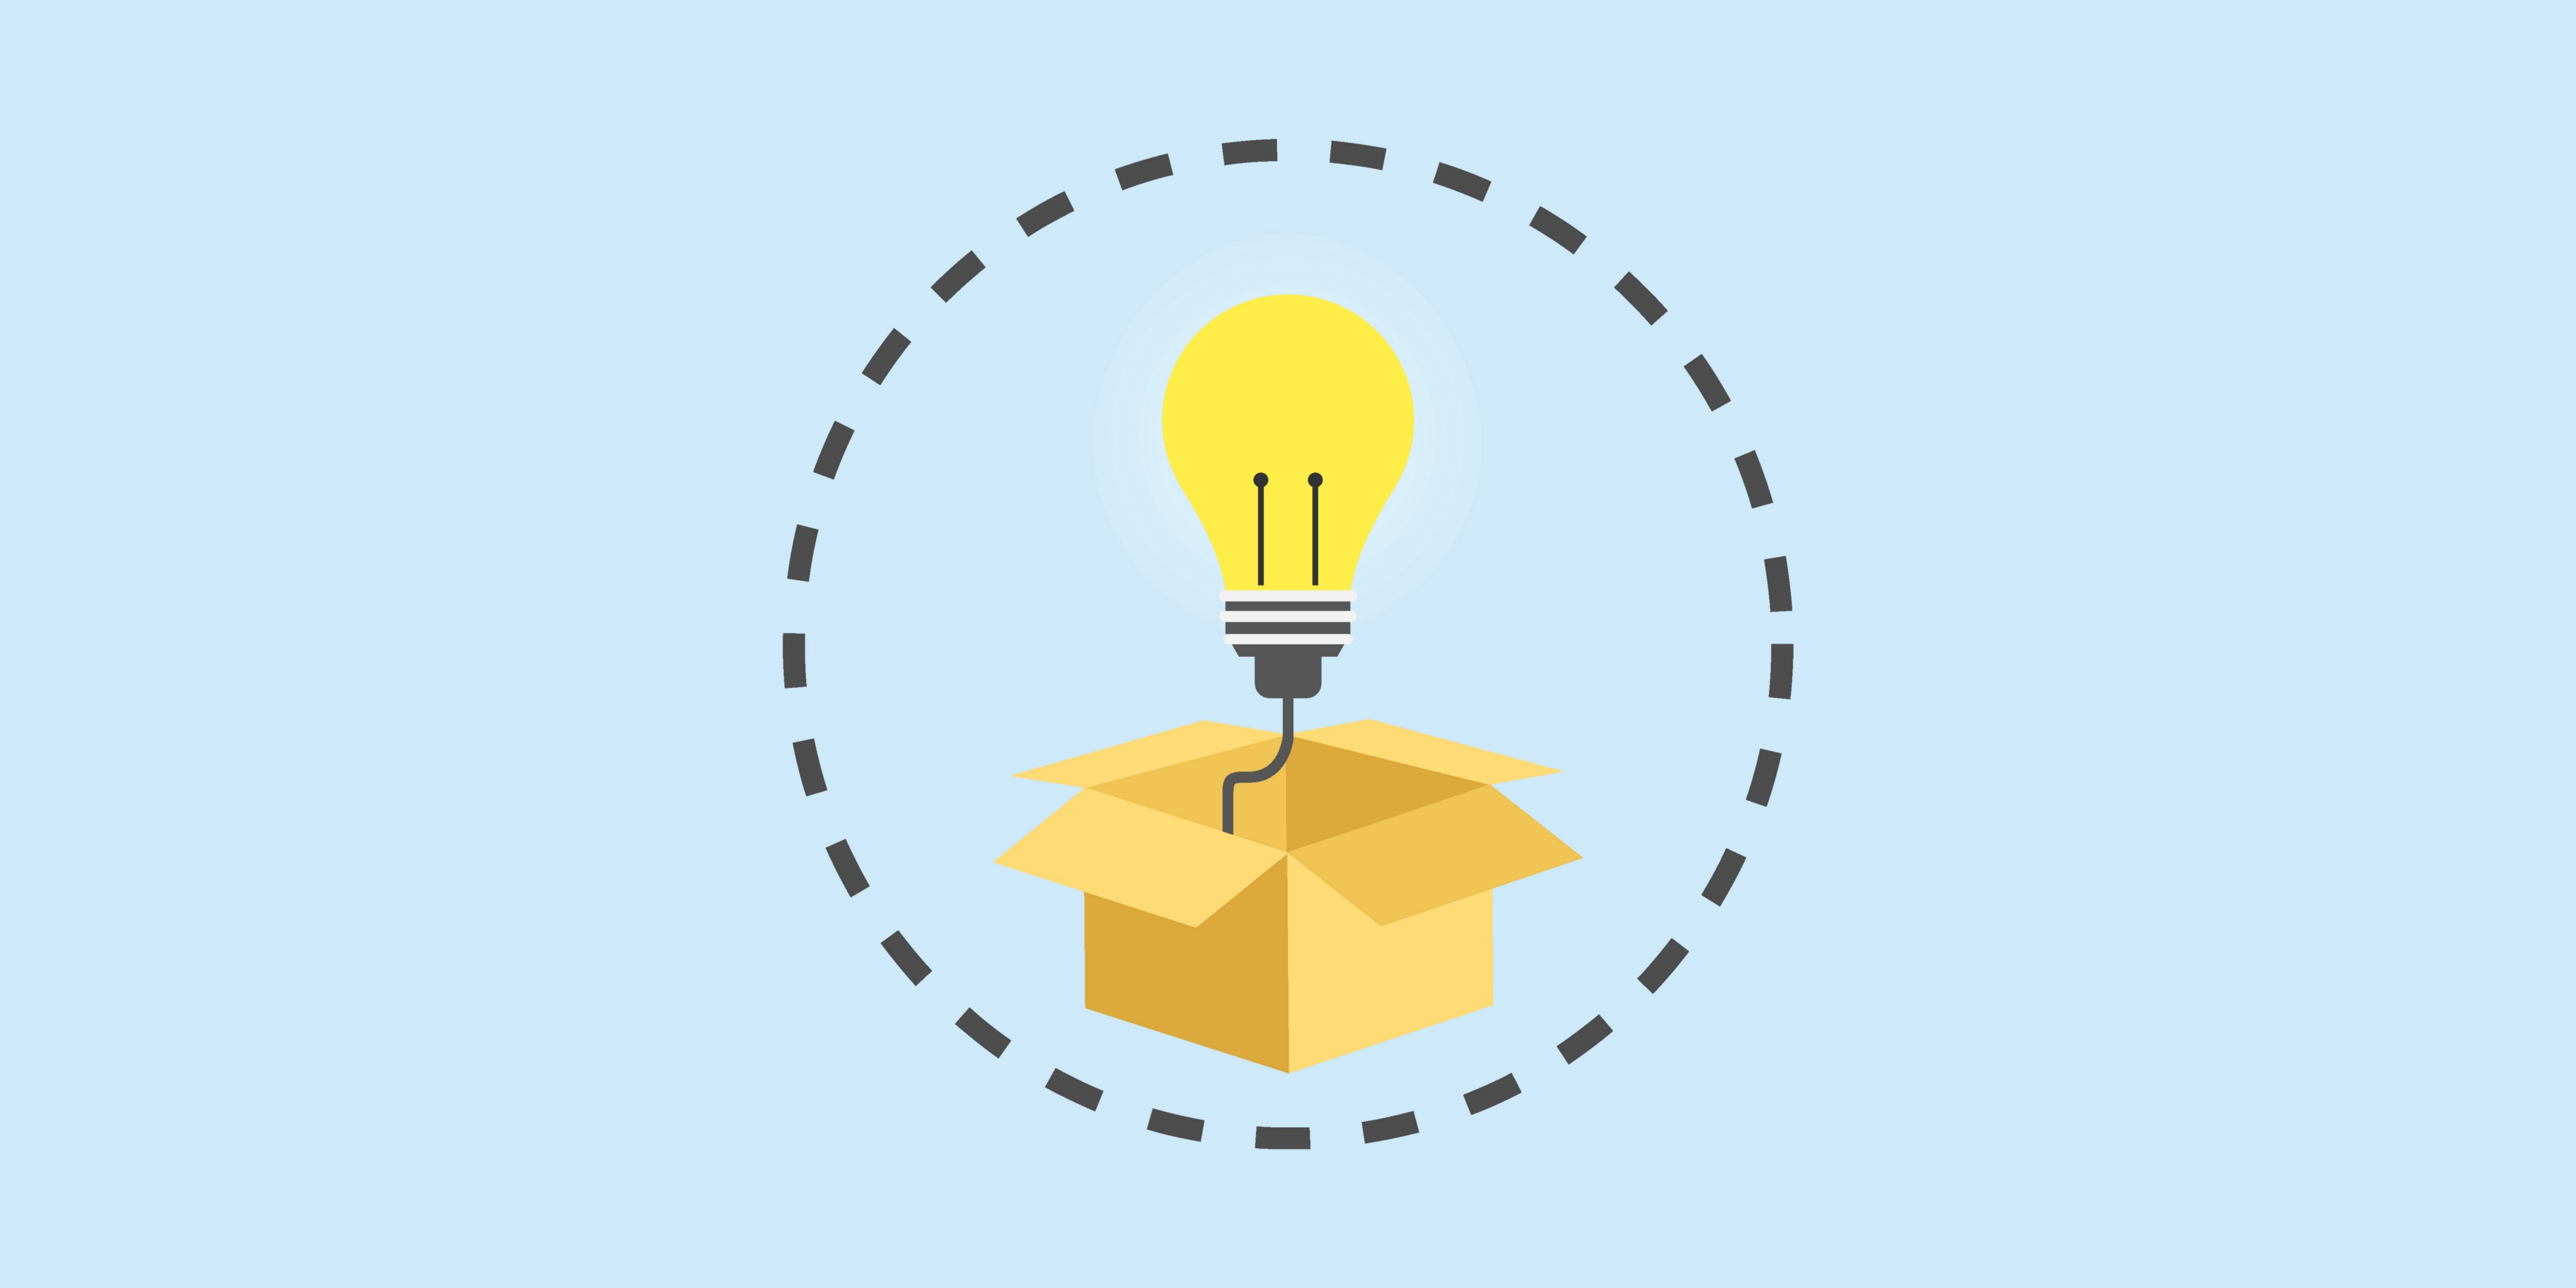 Light bulb coming out of a box.